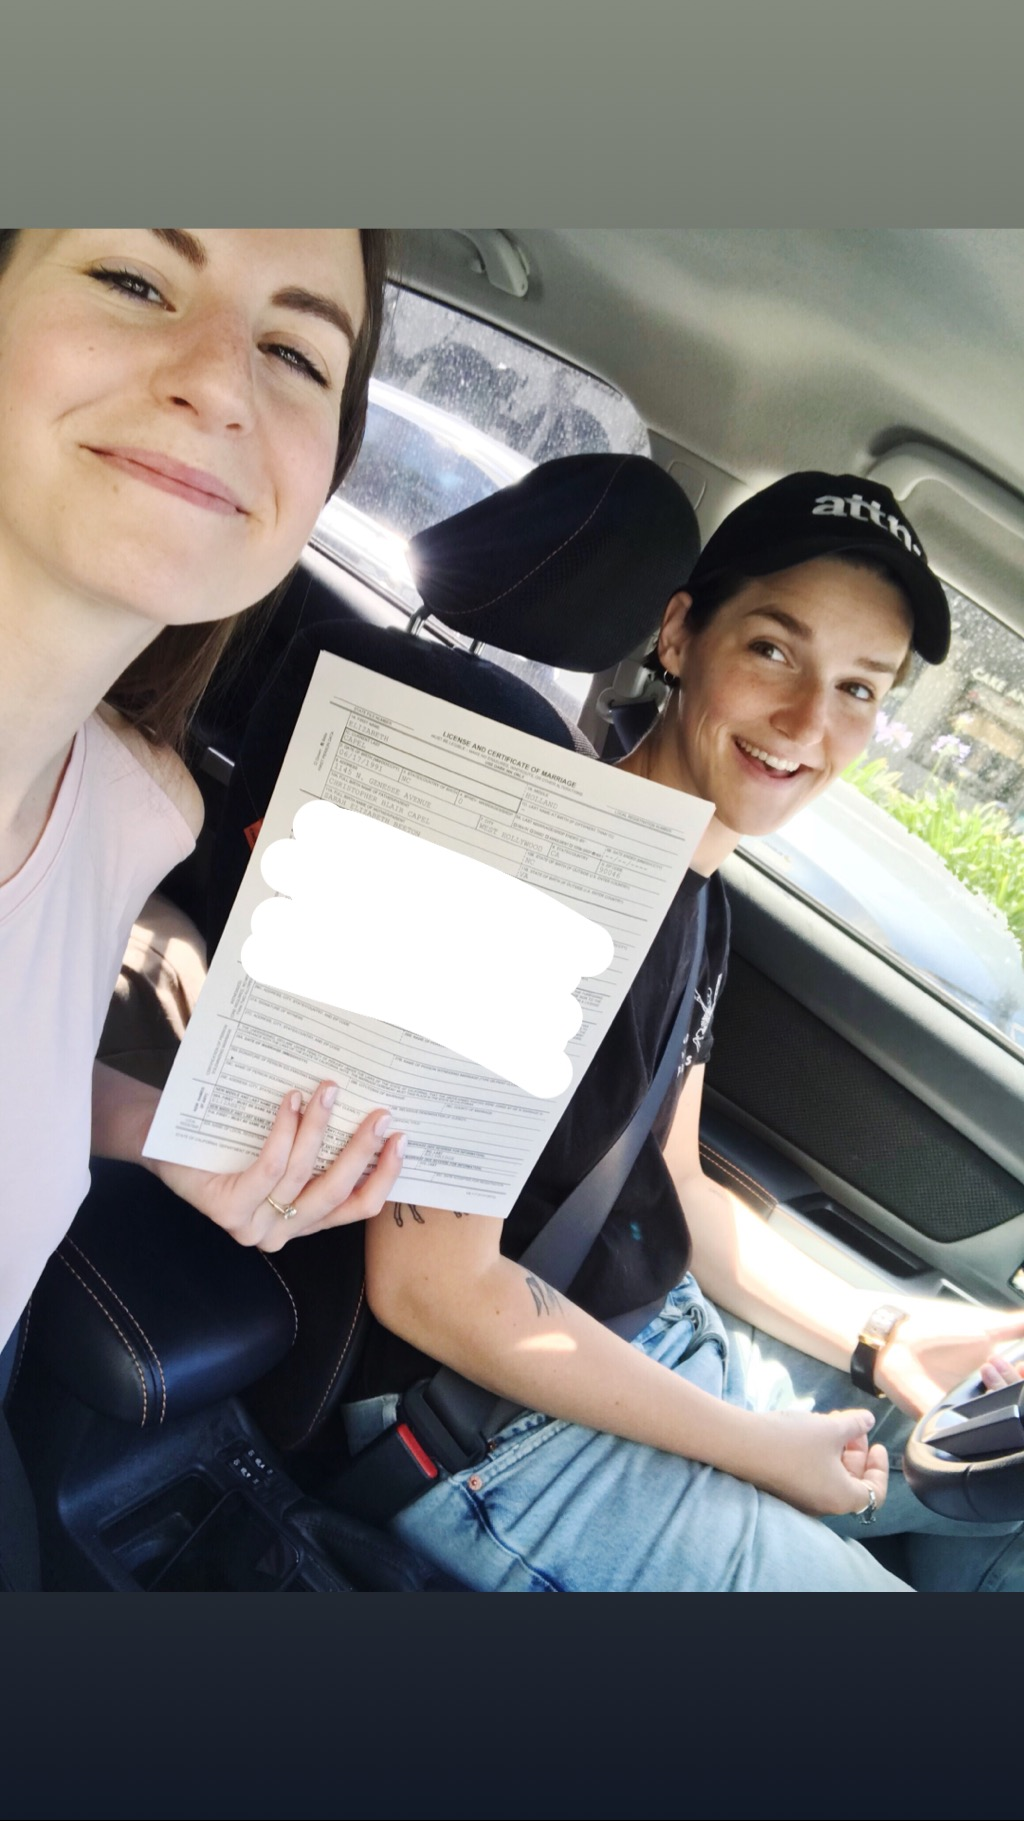 Getting our marriage license at the Beverly Hills courthouse! (I edited the picture to block out our information, haha). This was SUCH a sweet and special moment, and it's when I officially initiated my name change to Baldridge :)